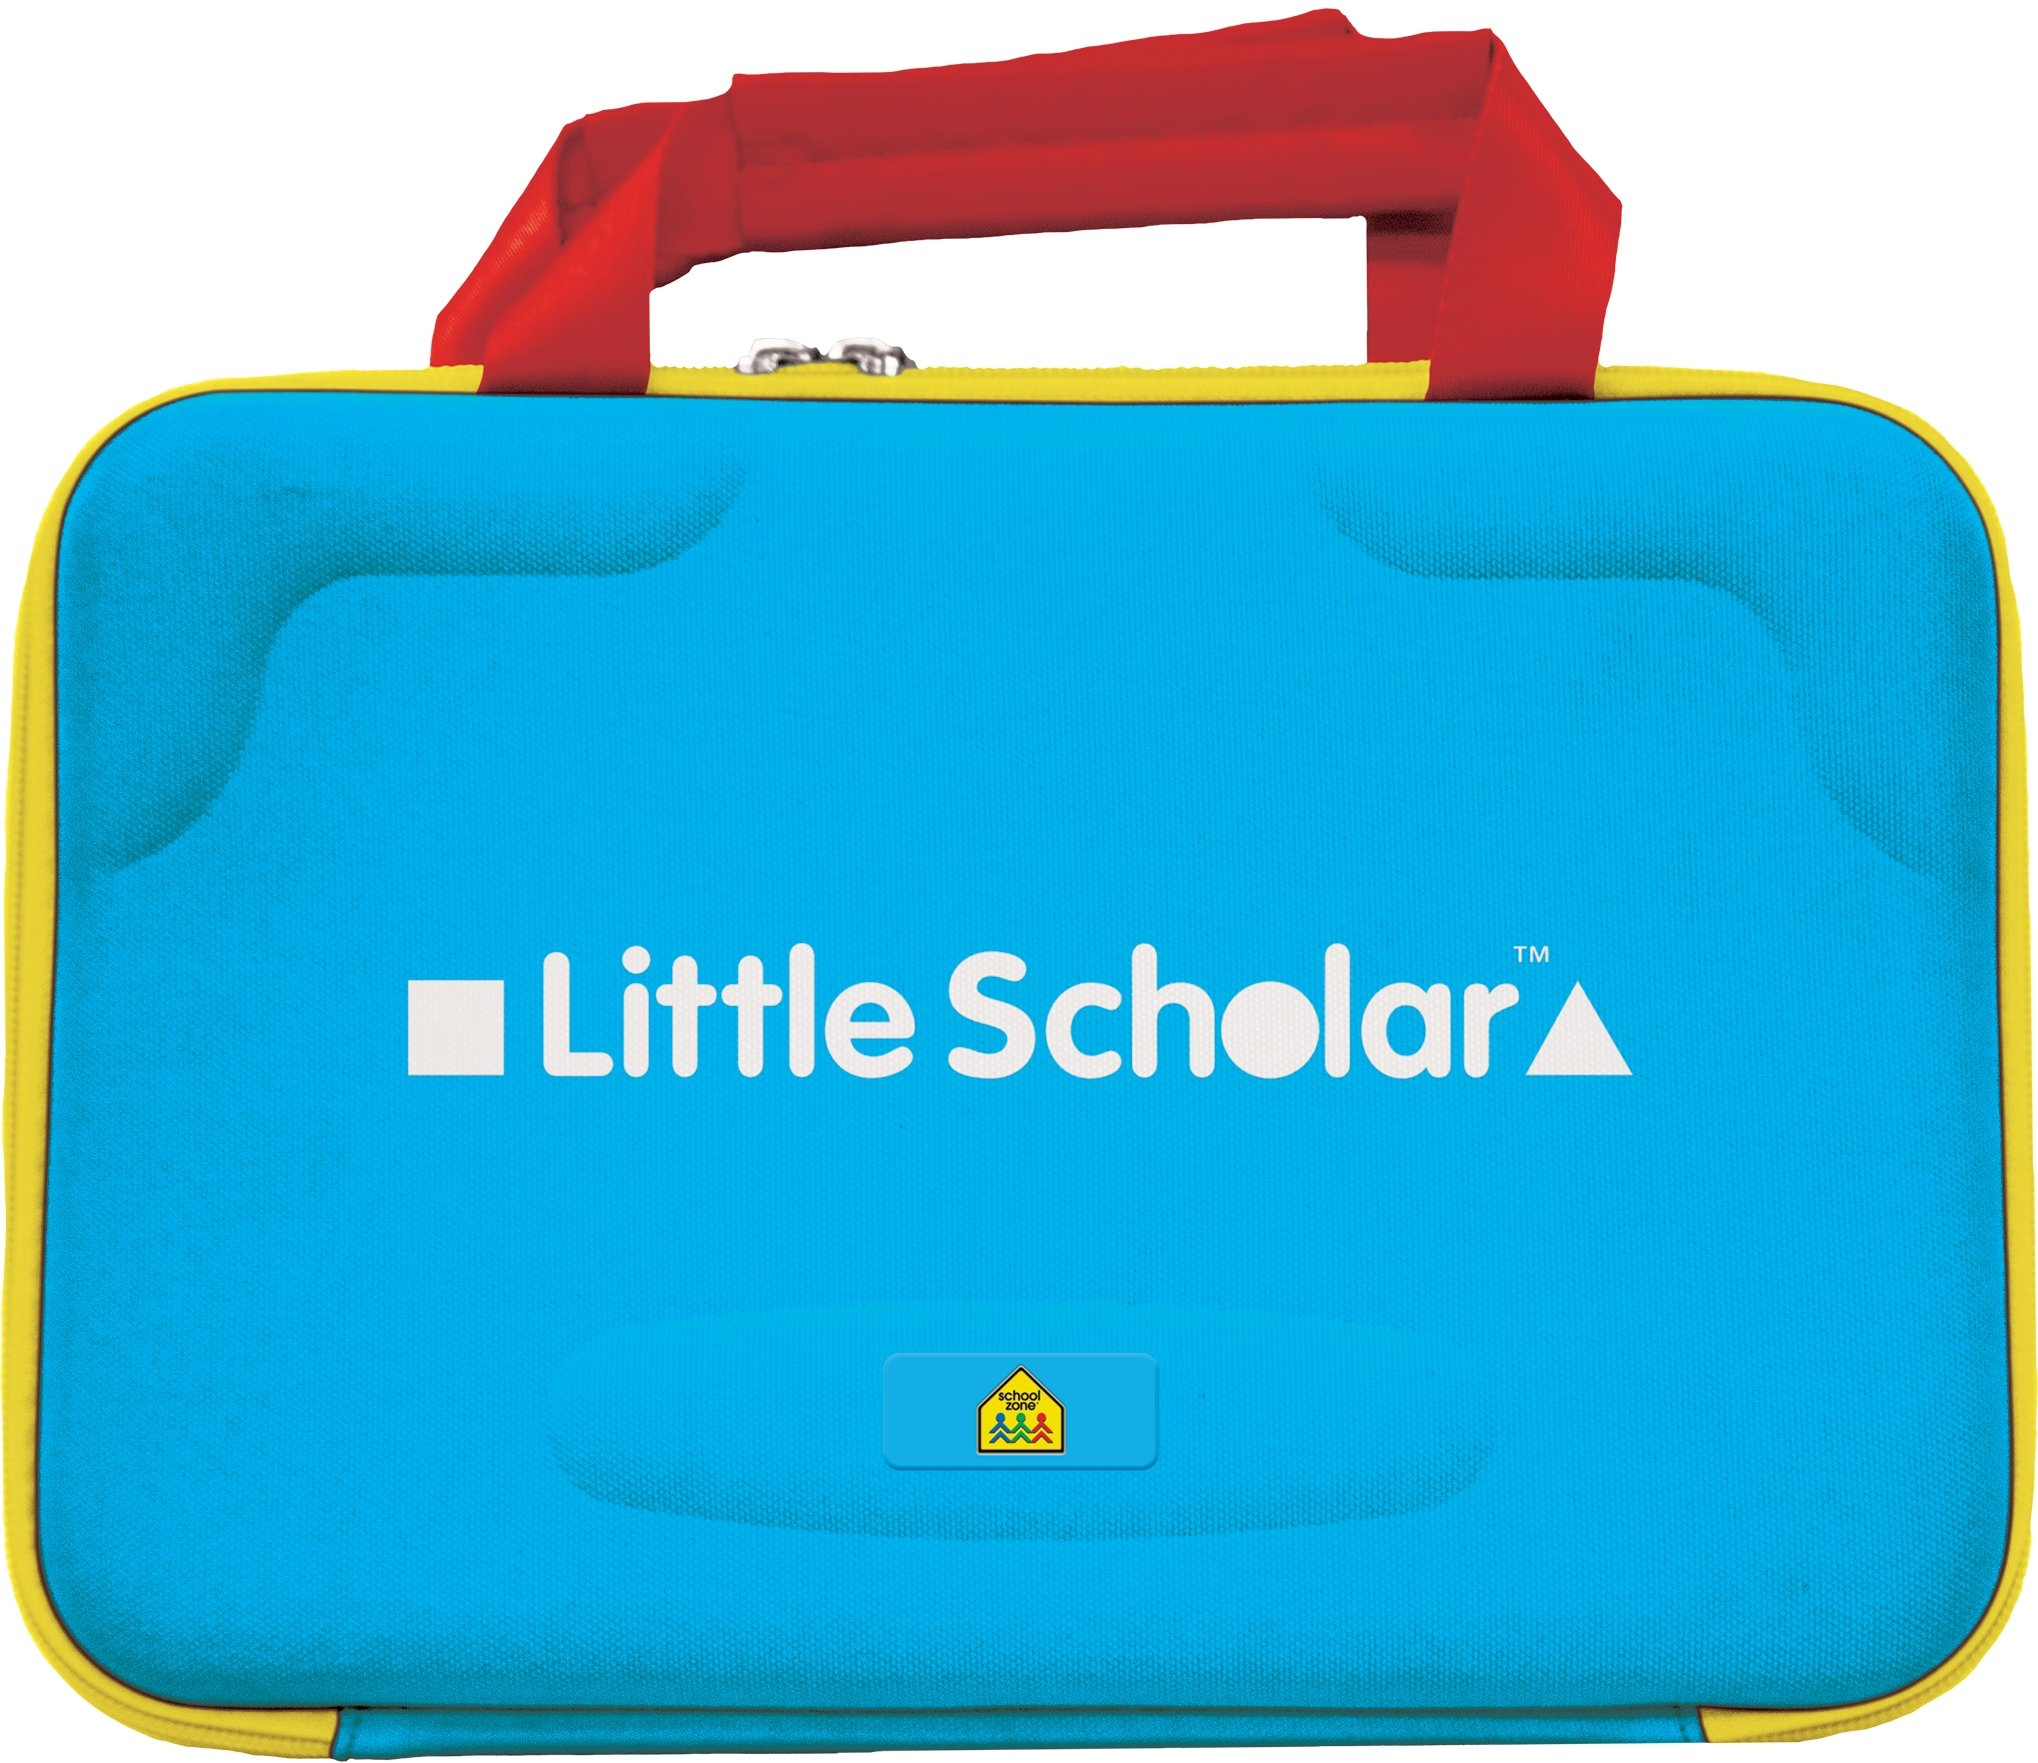 """School Zone - Little Scholar Kids Learning Tablet Protective Carrying Case - Ages 3 to 7, Fits up to 8"""" Tablets, Zip Closure, Inside Pockets, Hard Shell, Handles, Durable, Lightweight"""